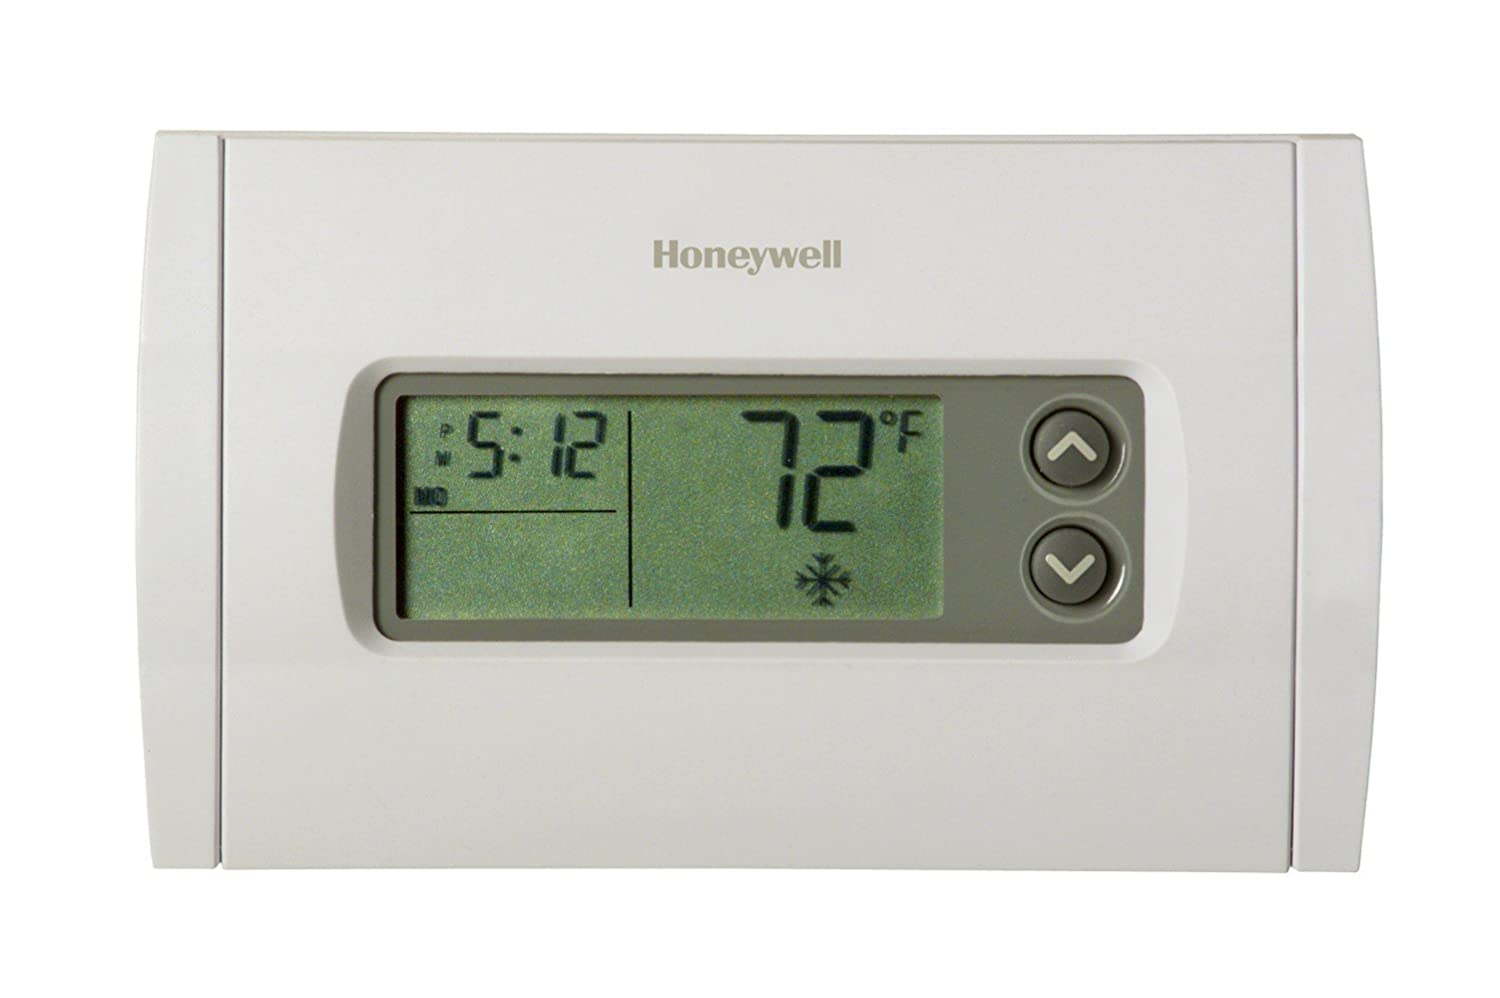 Honeywell Thermostat Troubleshooting Online User Manual Digital Th3110d1008 Wiring Diagram Wire Data Rth230b 5 2 Day Programmable Rh Amazon Com